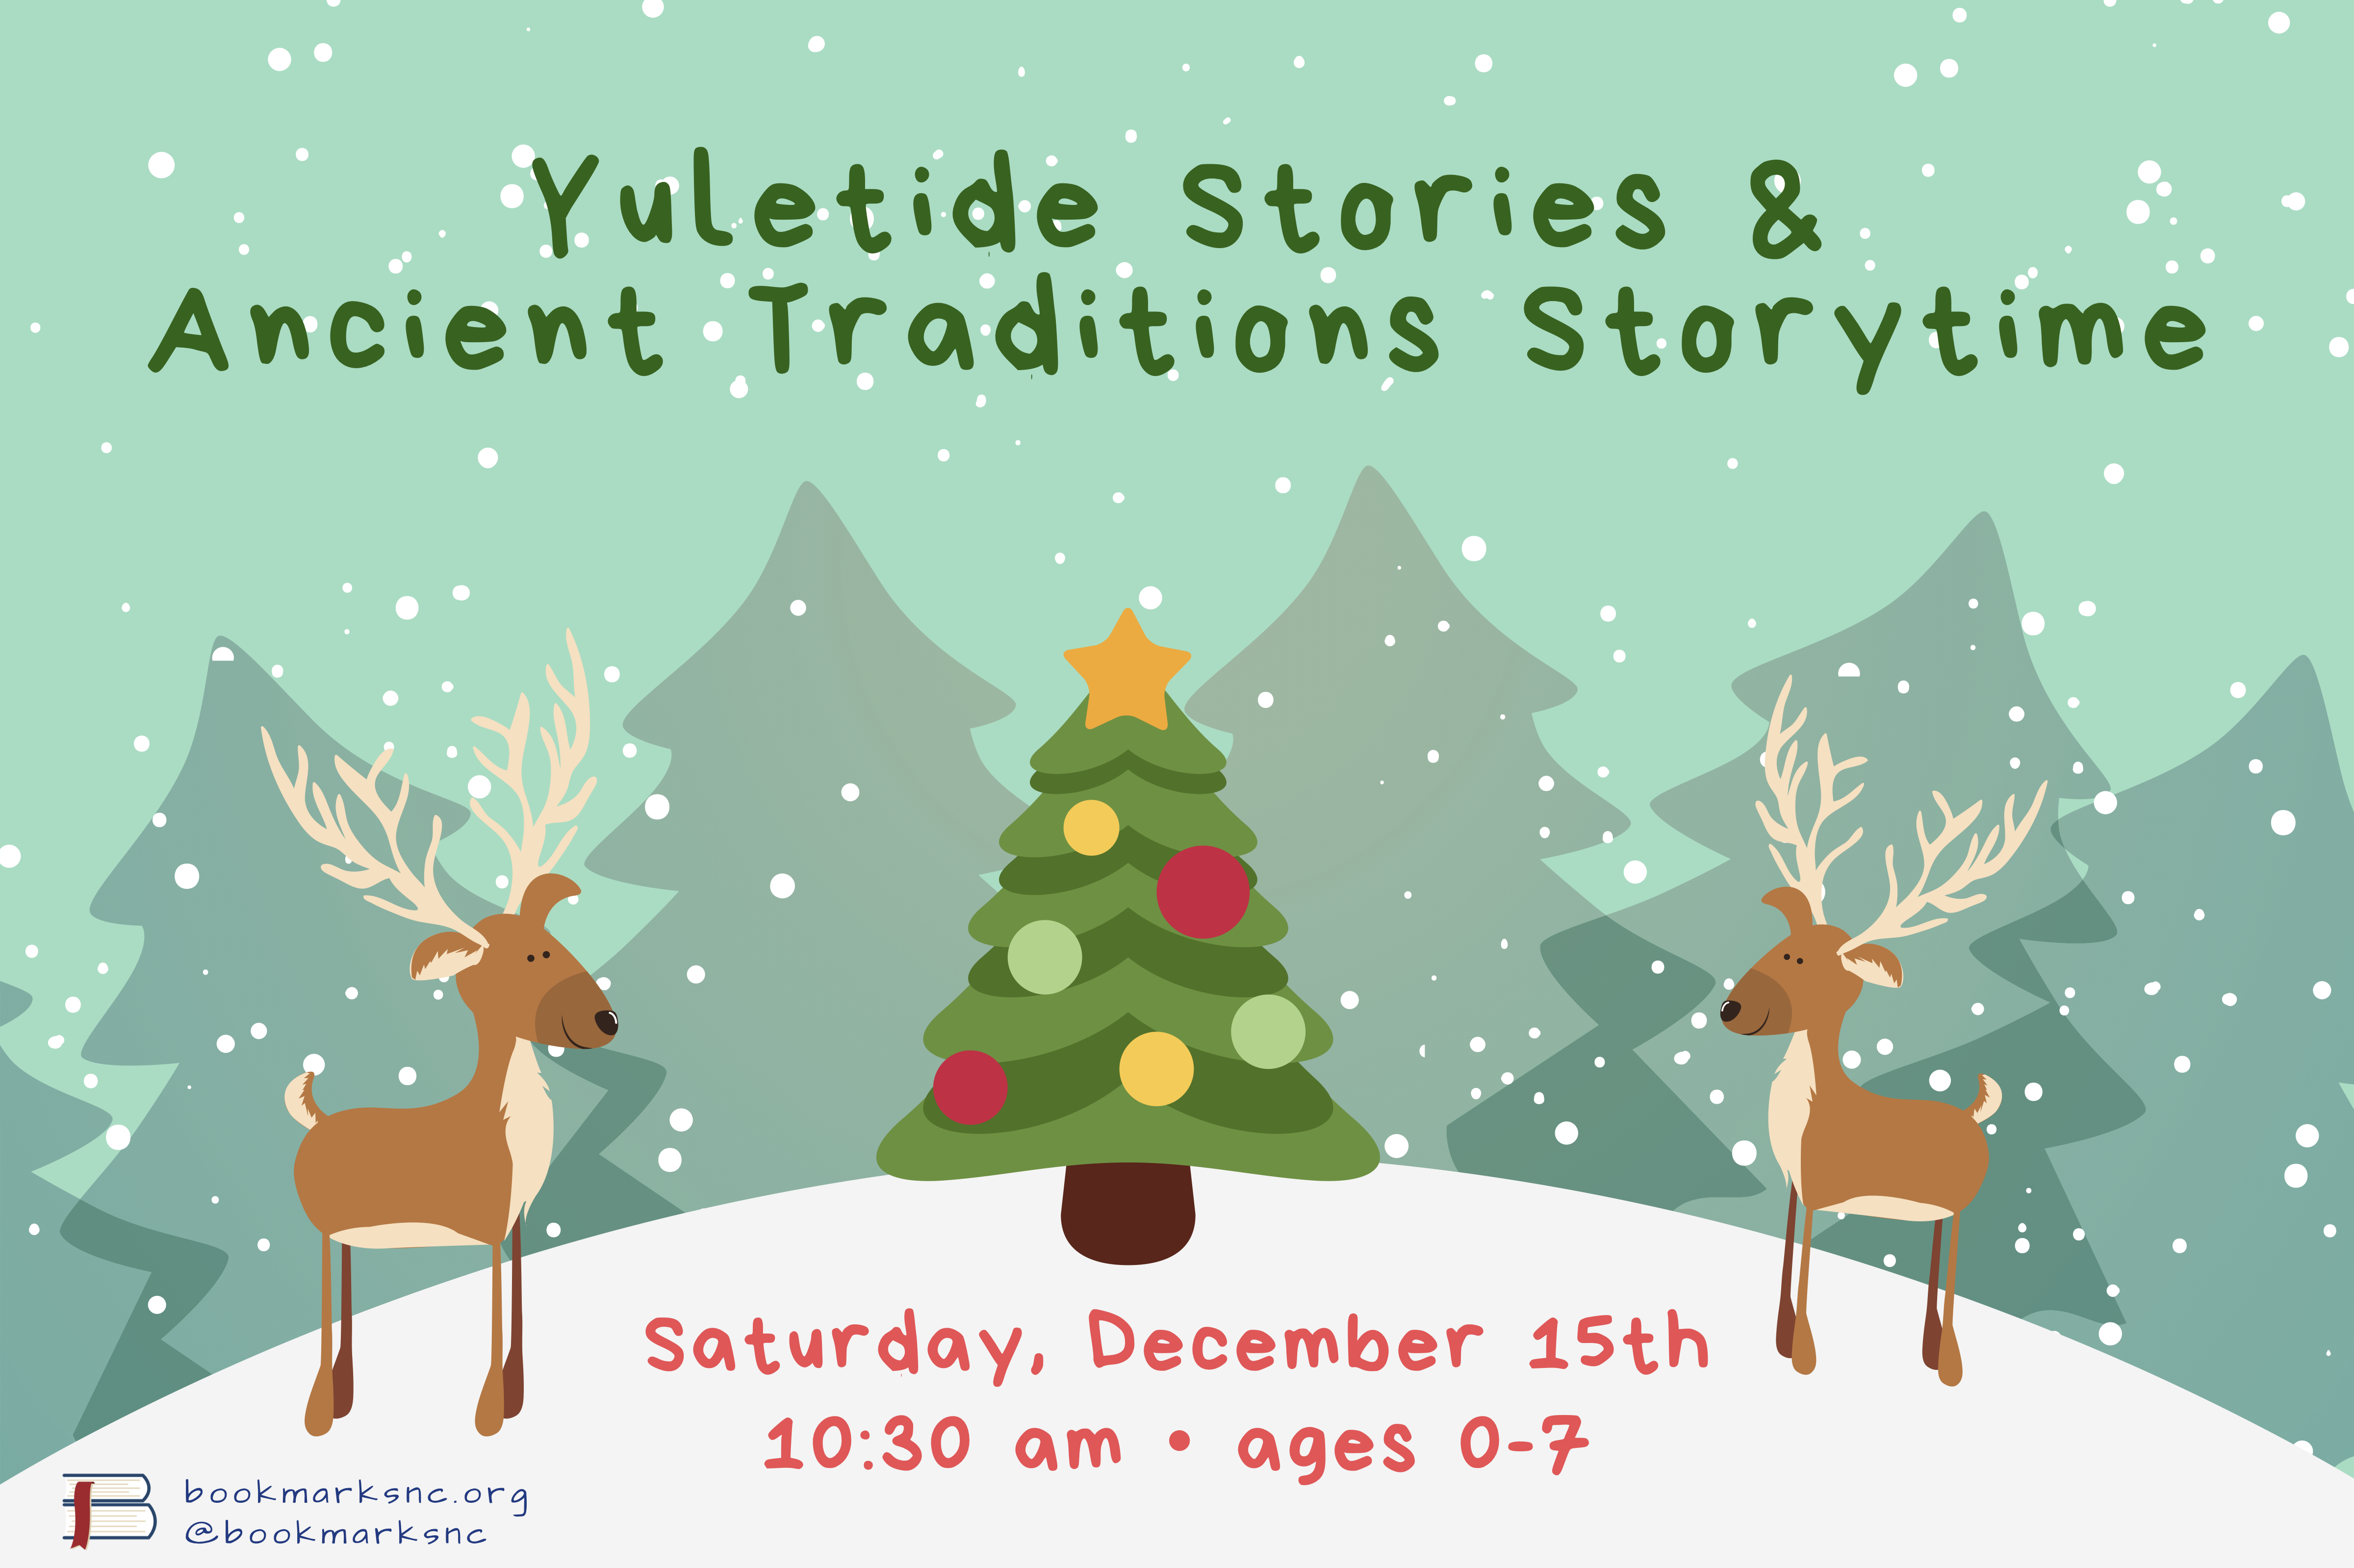 Yuletide Stories & Ancient Traditions Storytime